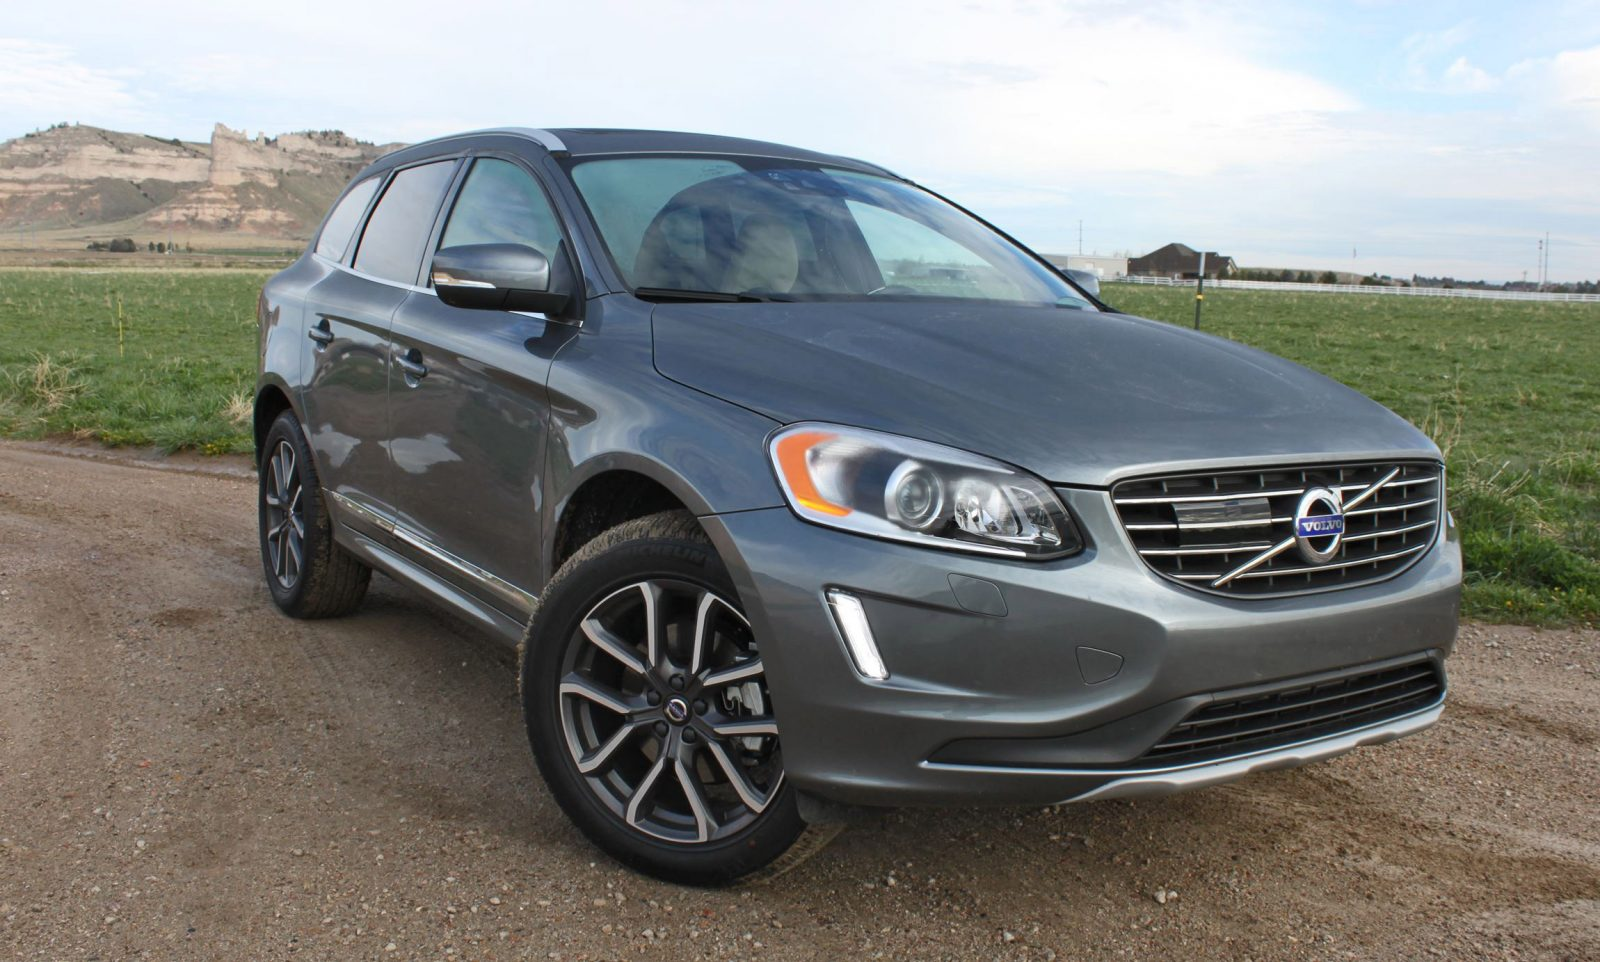 road test review 2016 volvo xc60 t6 awd by tim esterdahl car revs. Black Bedroom Furniture Sets. Home Design Ideas